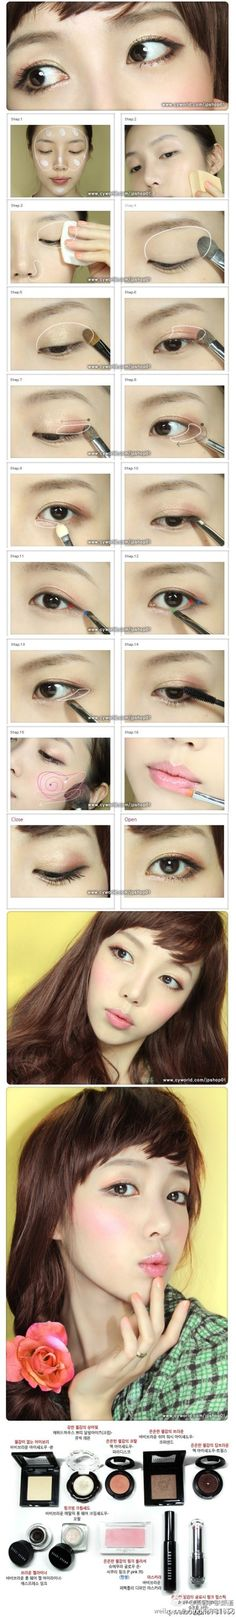 Asian make-up ✨www.SkincareInKorea.info ✨www.DebbieKrug.org